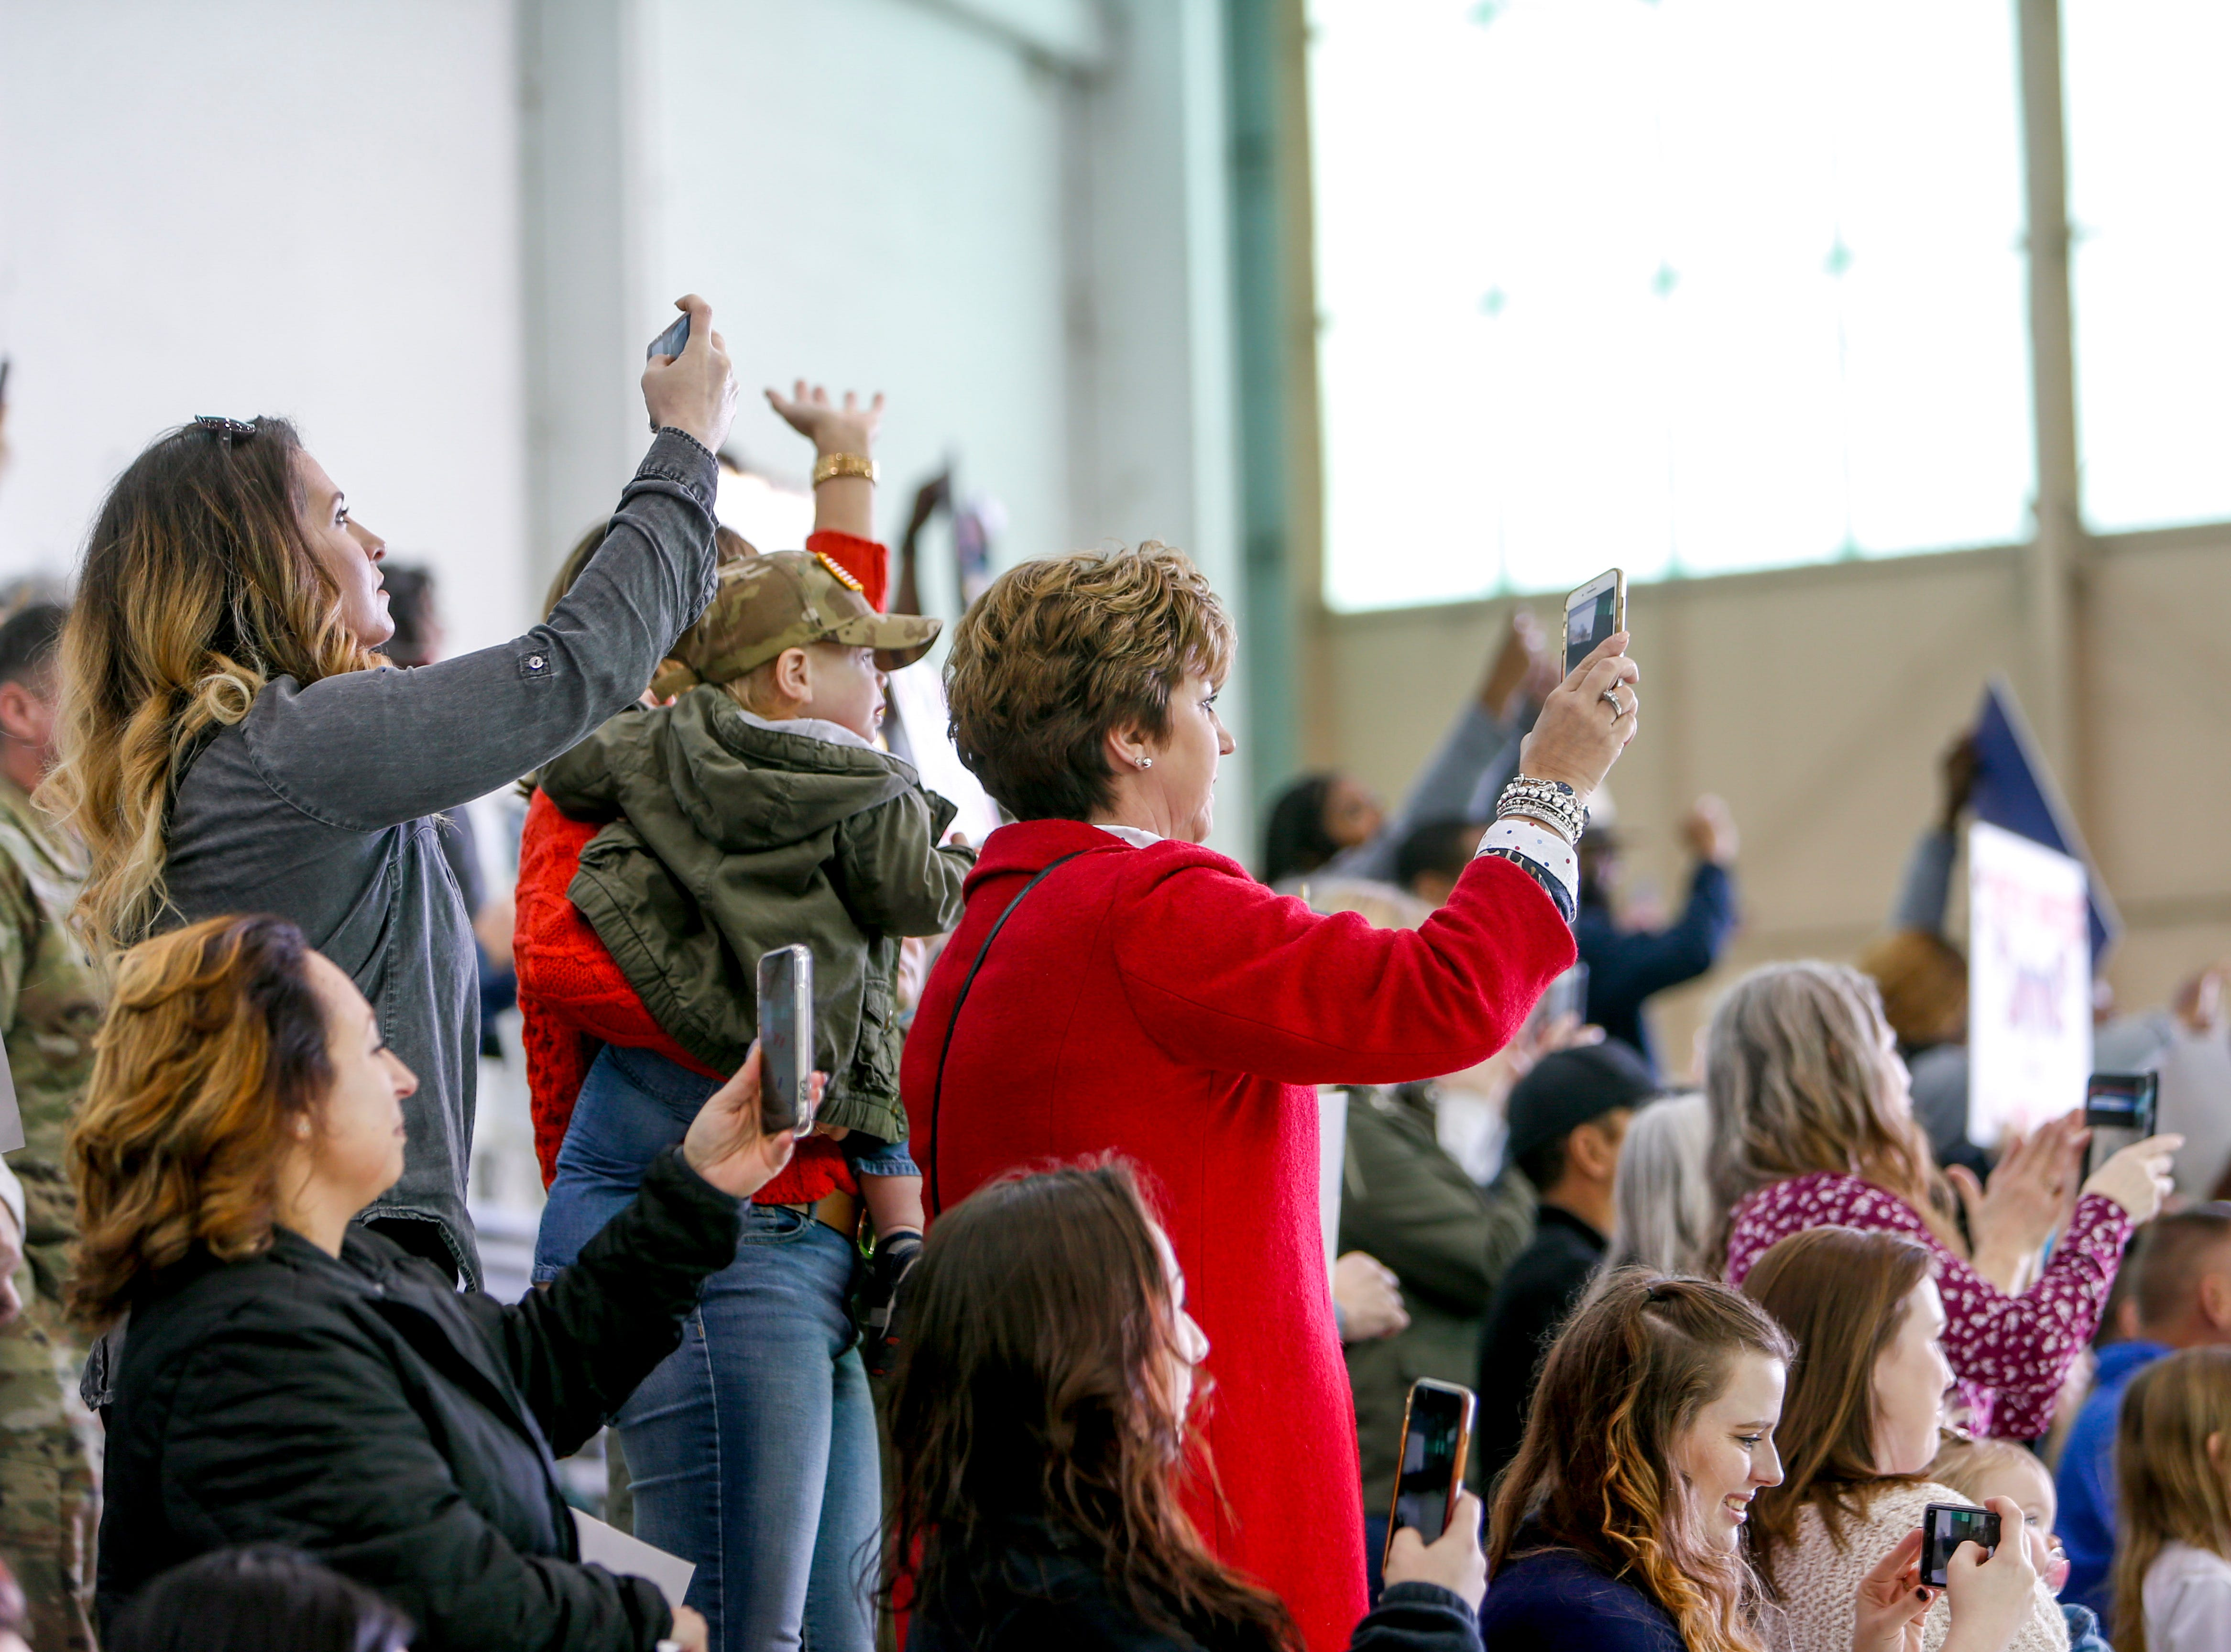 Family members and loved ones take pictures of troops coming home from deployment in Afghanistan during the return of soldiers from the 101st Combat Aviation Brigade of 101st Airborne Division (Air Assault) at Campbell Army Air Field in Fort Campbell, KY., on Sunday, March 10, 2019.